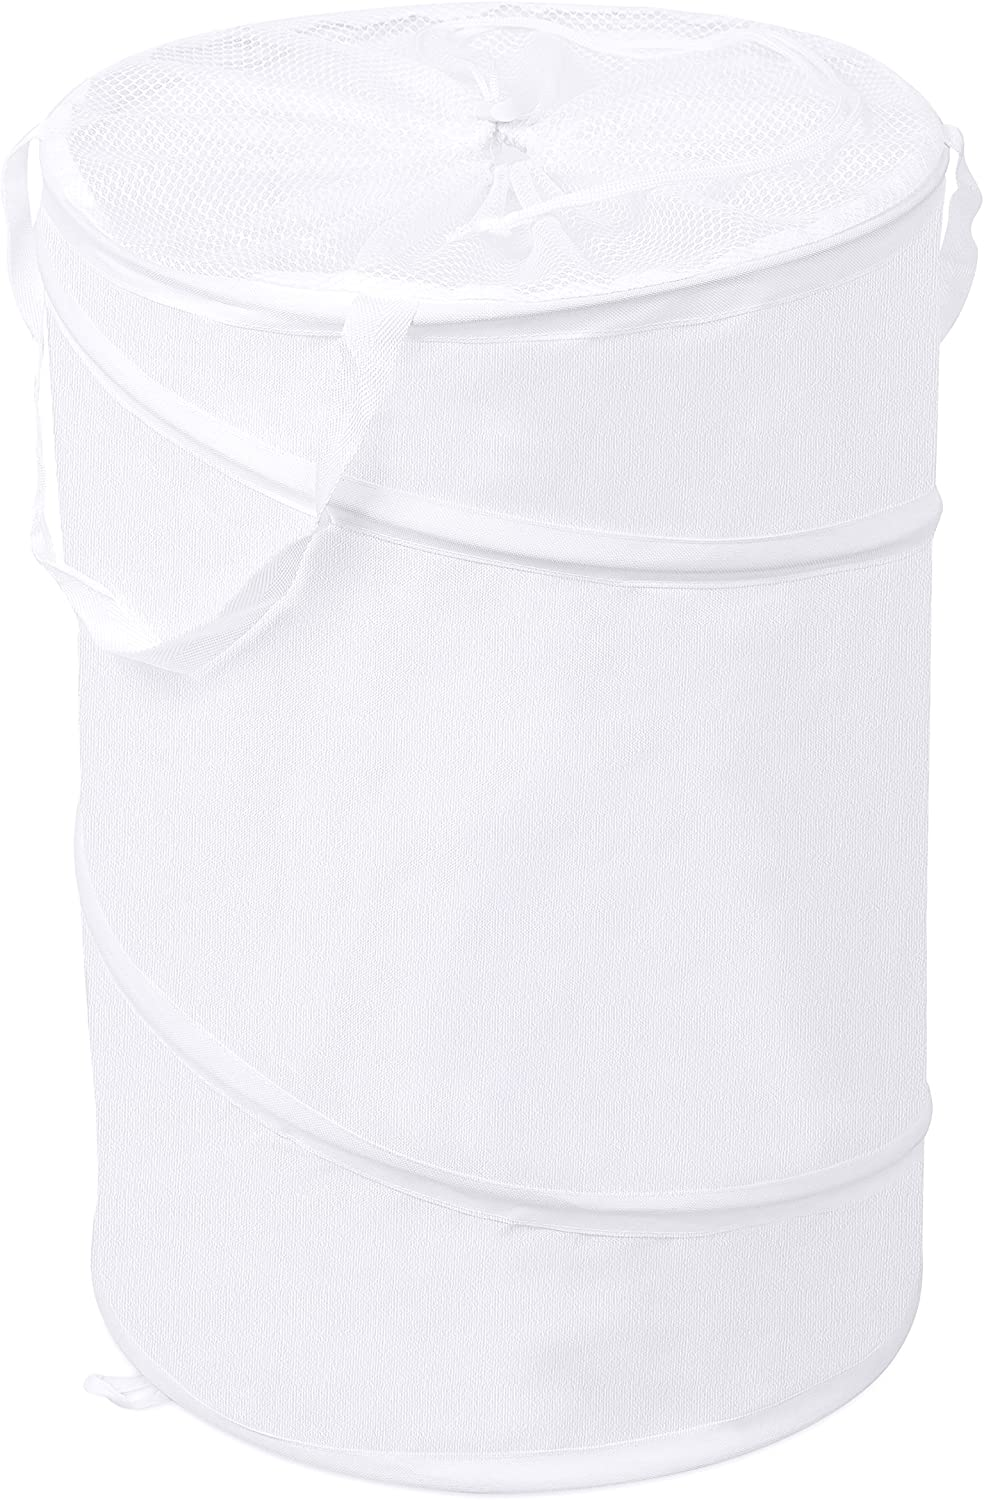 Internet's Best Circle Pop Up Laundry Hamper - Collapsible Laundry Bag with Mesh Drawstring Lid - Carry Handles - Dirty Laundry Sorter Basket - White